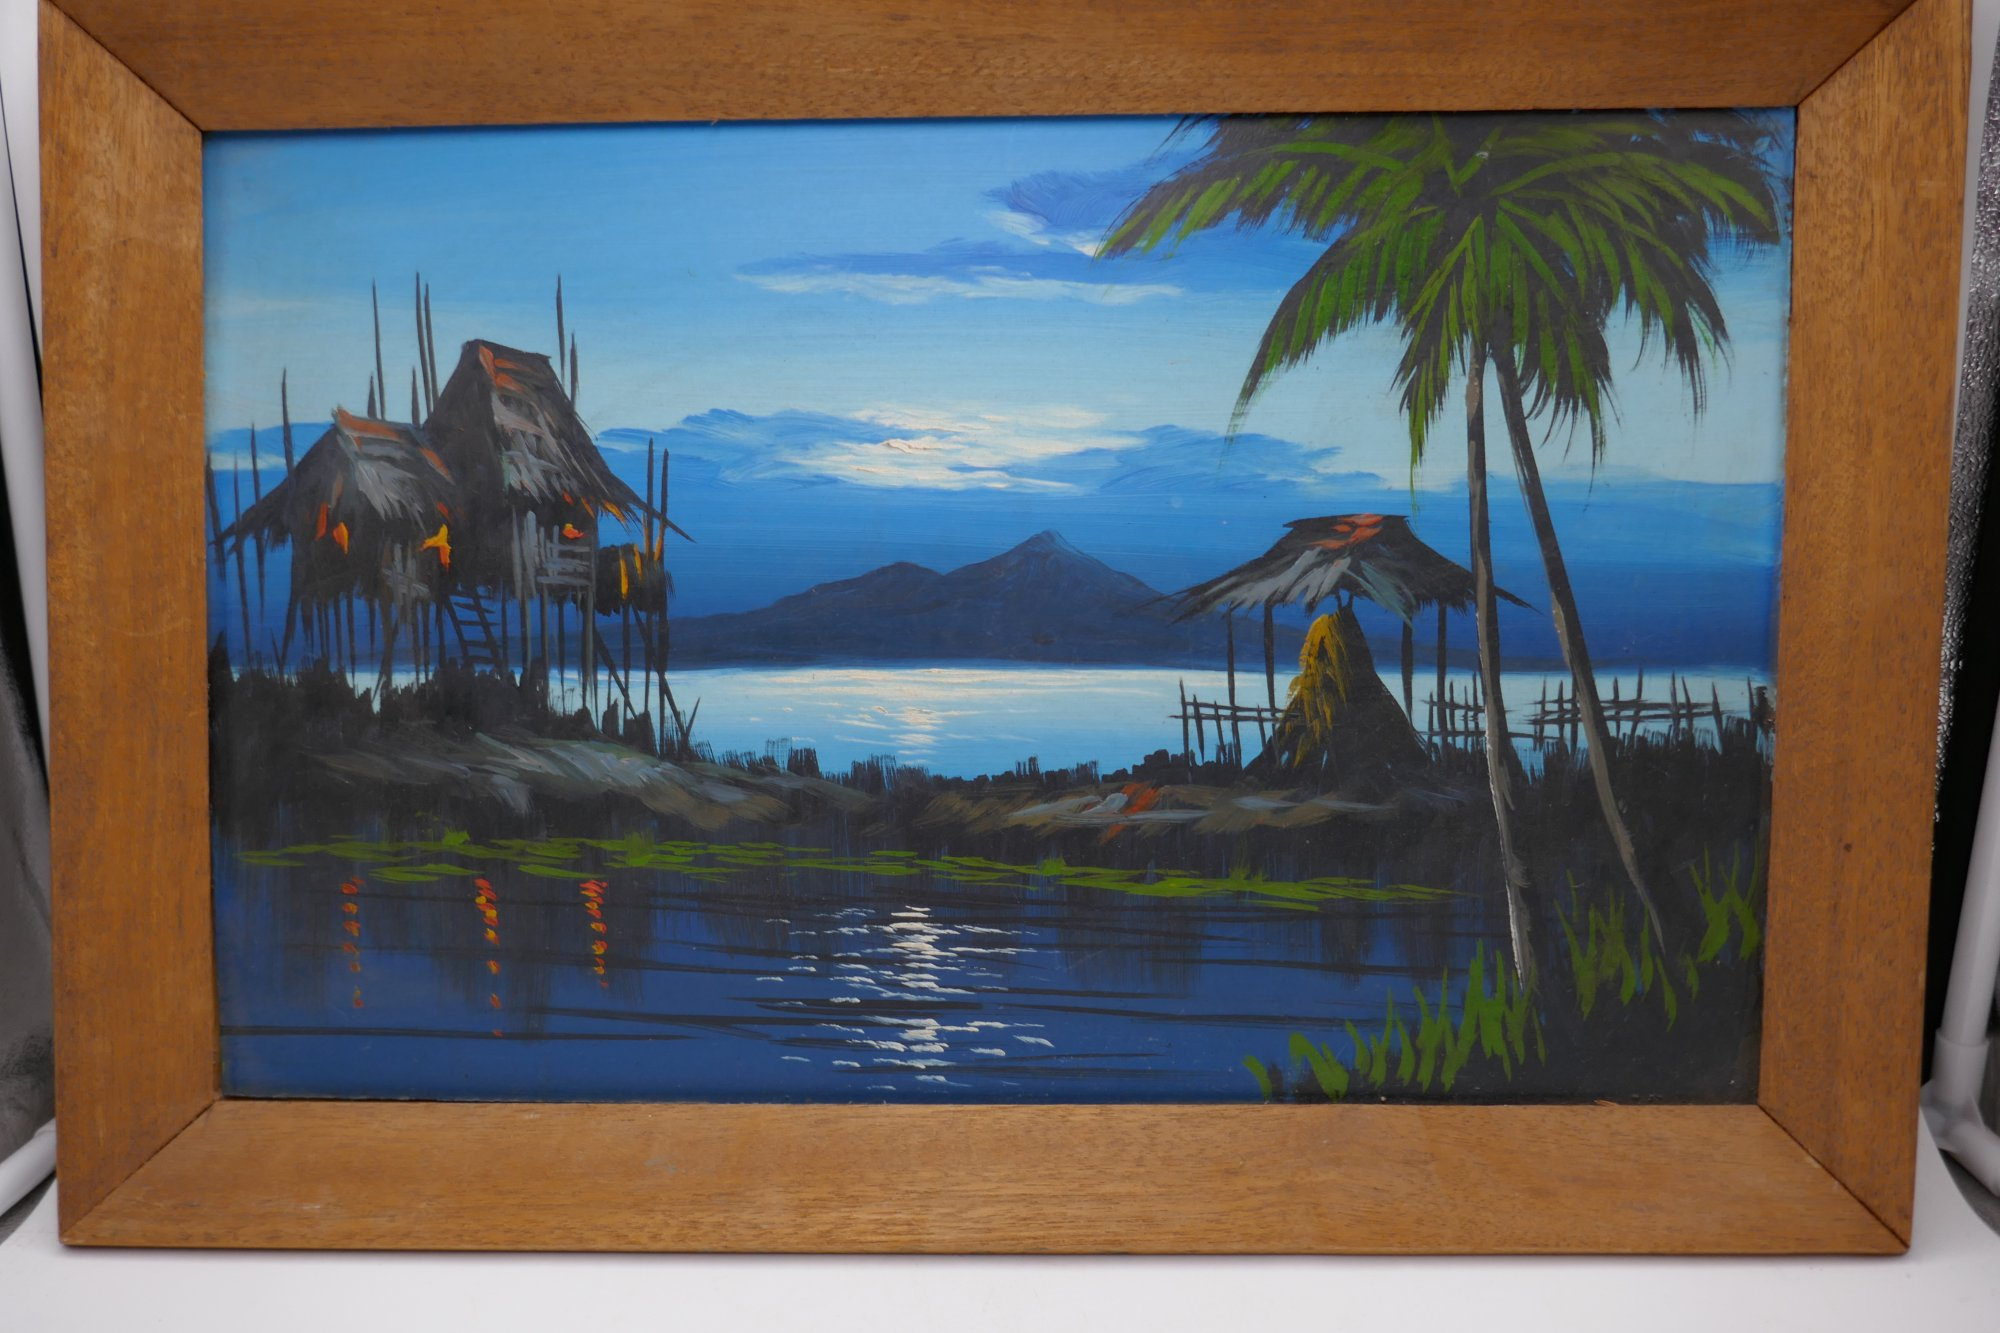 Small Framed Thai street art painting of a sea and land scape UX